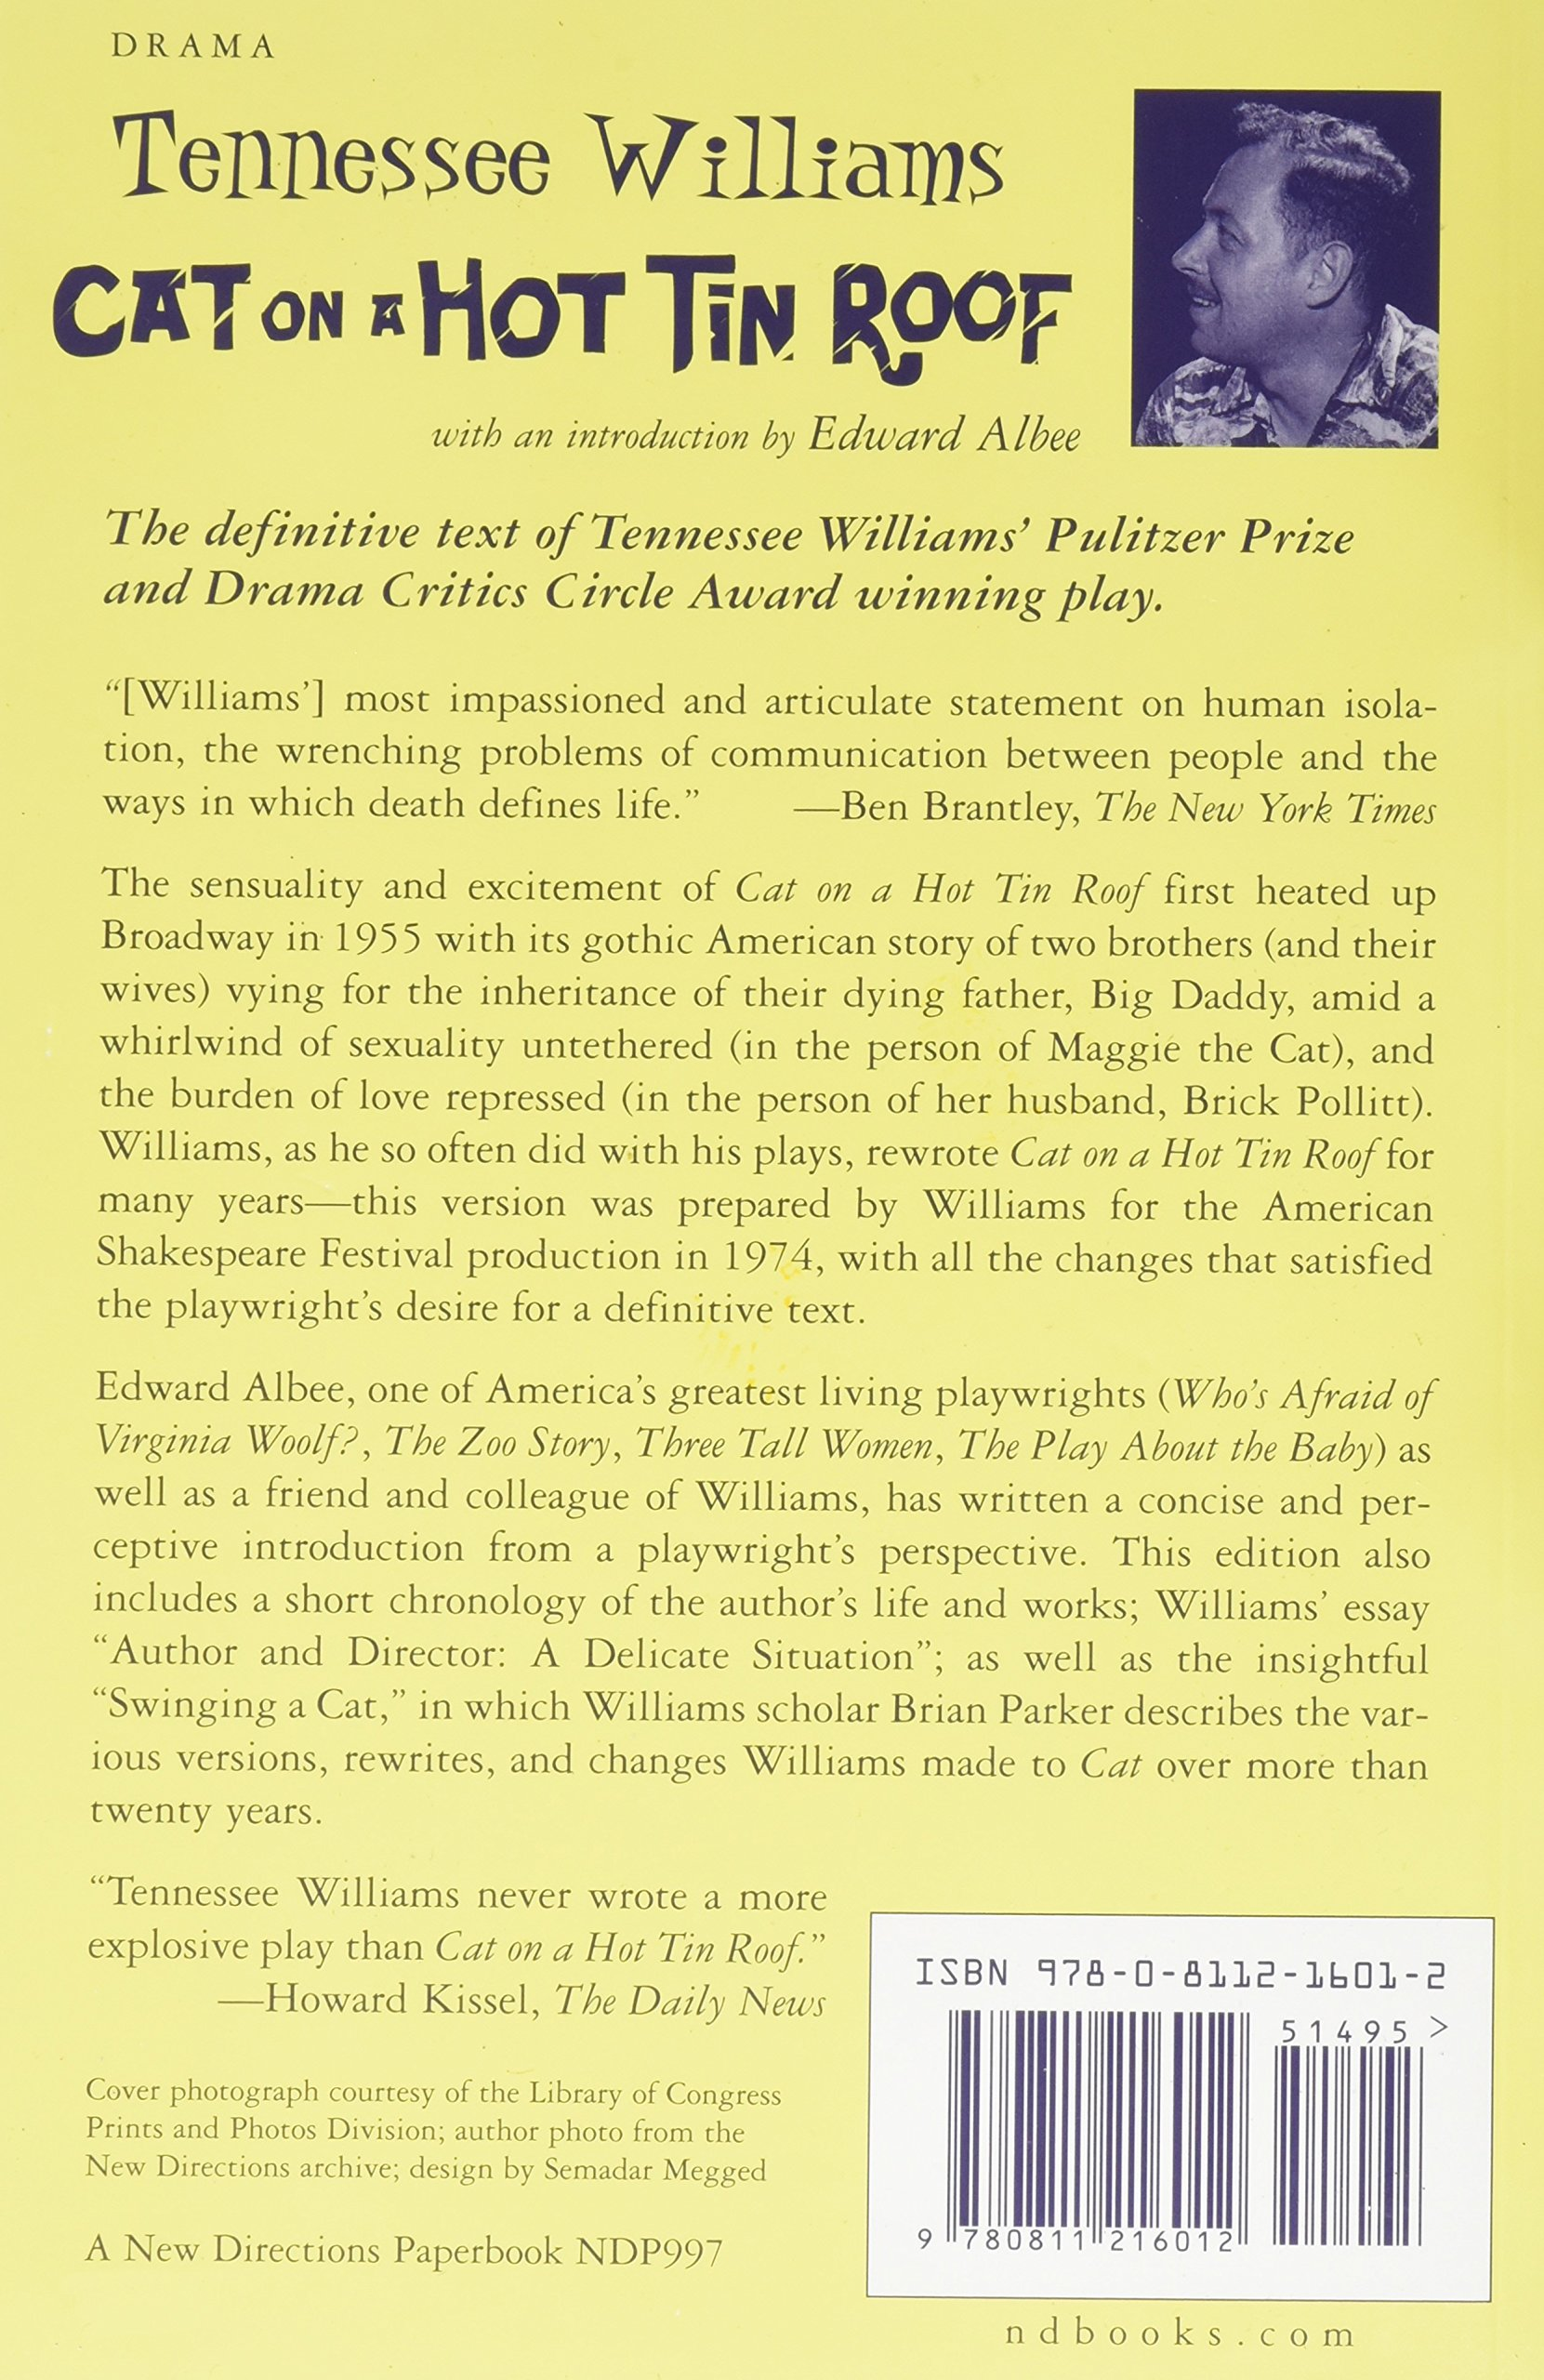 cat on a hot tin roof tennessee williams edward albee cat on a hot tin roof tennessee williams edward albee 9780811216012 books ca